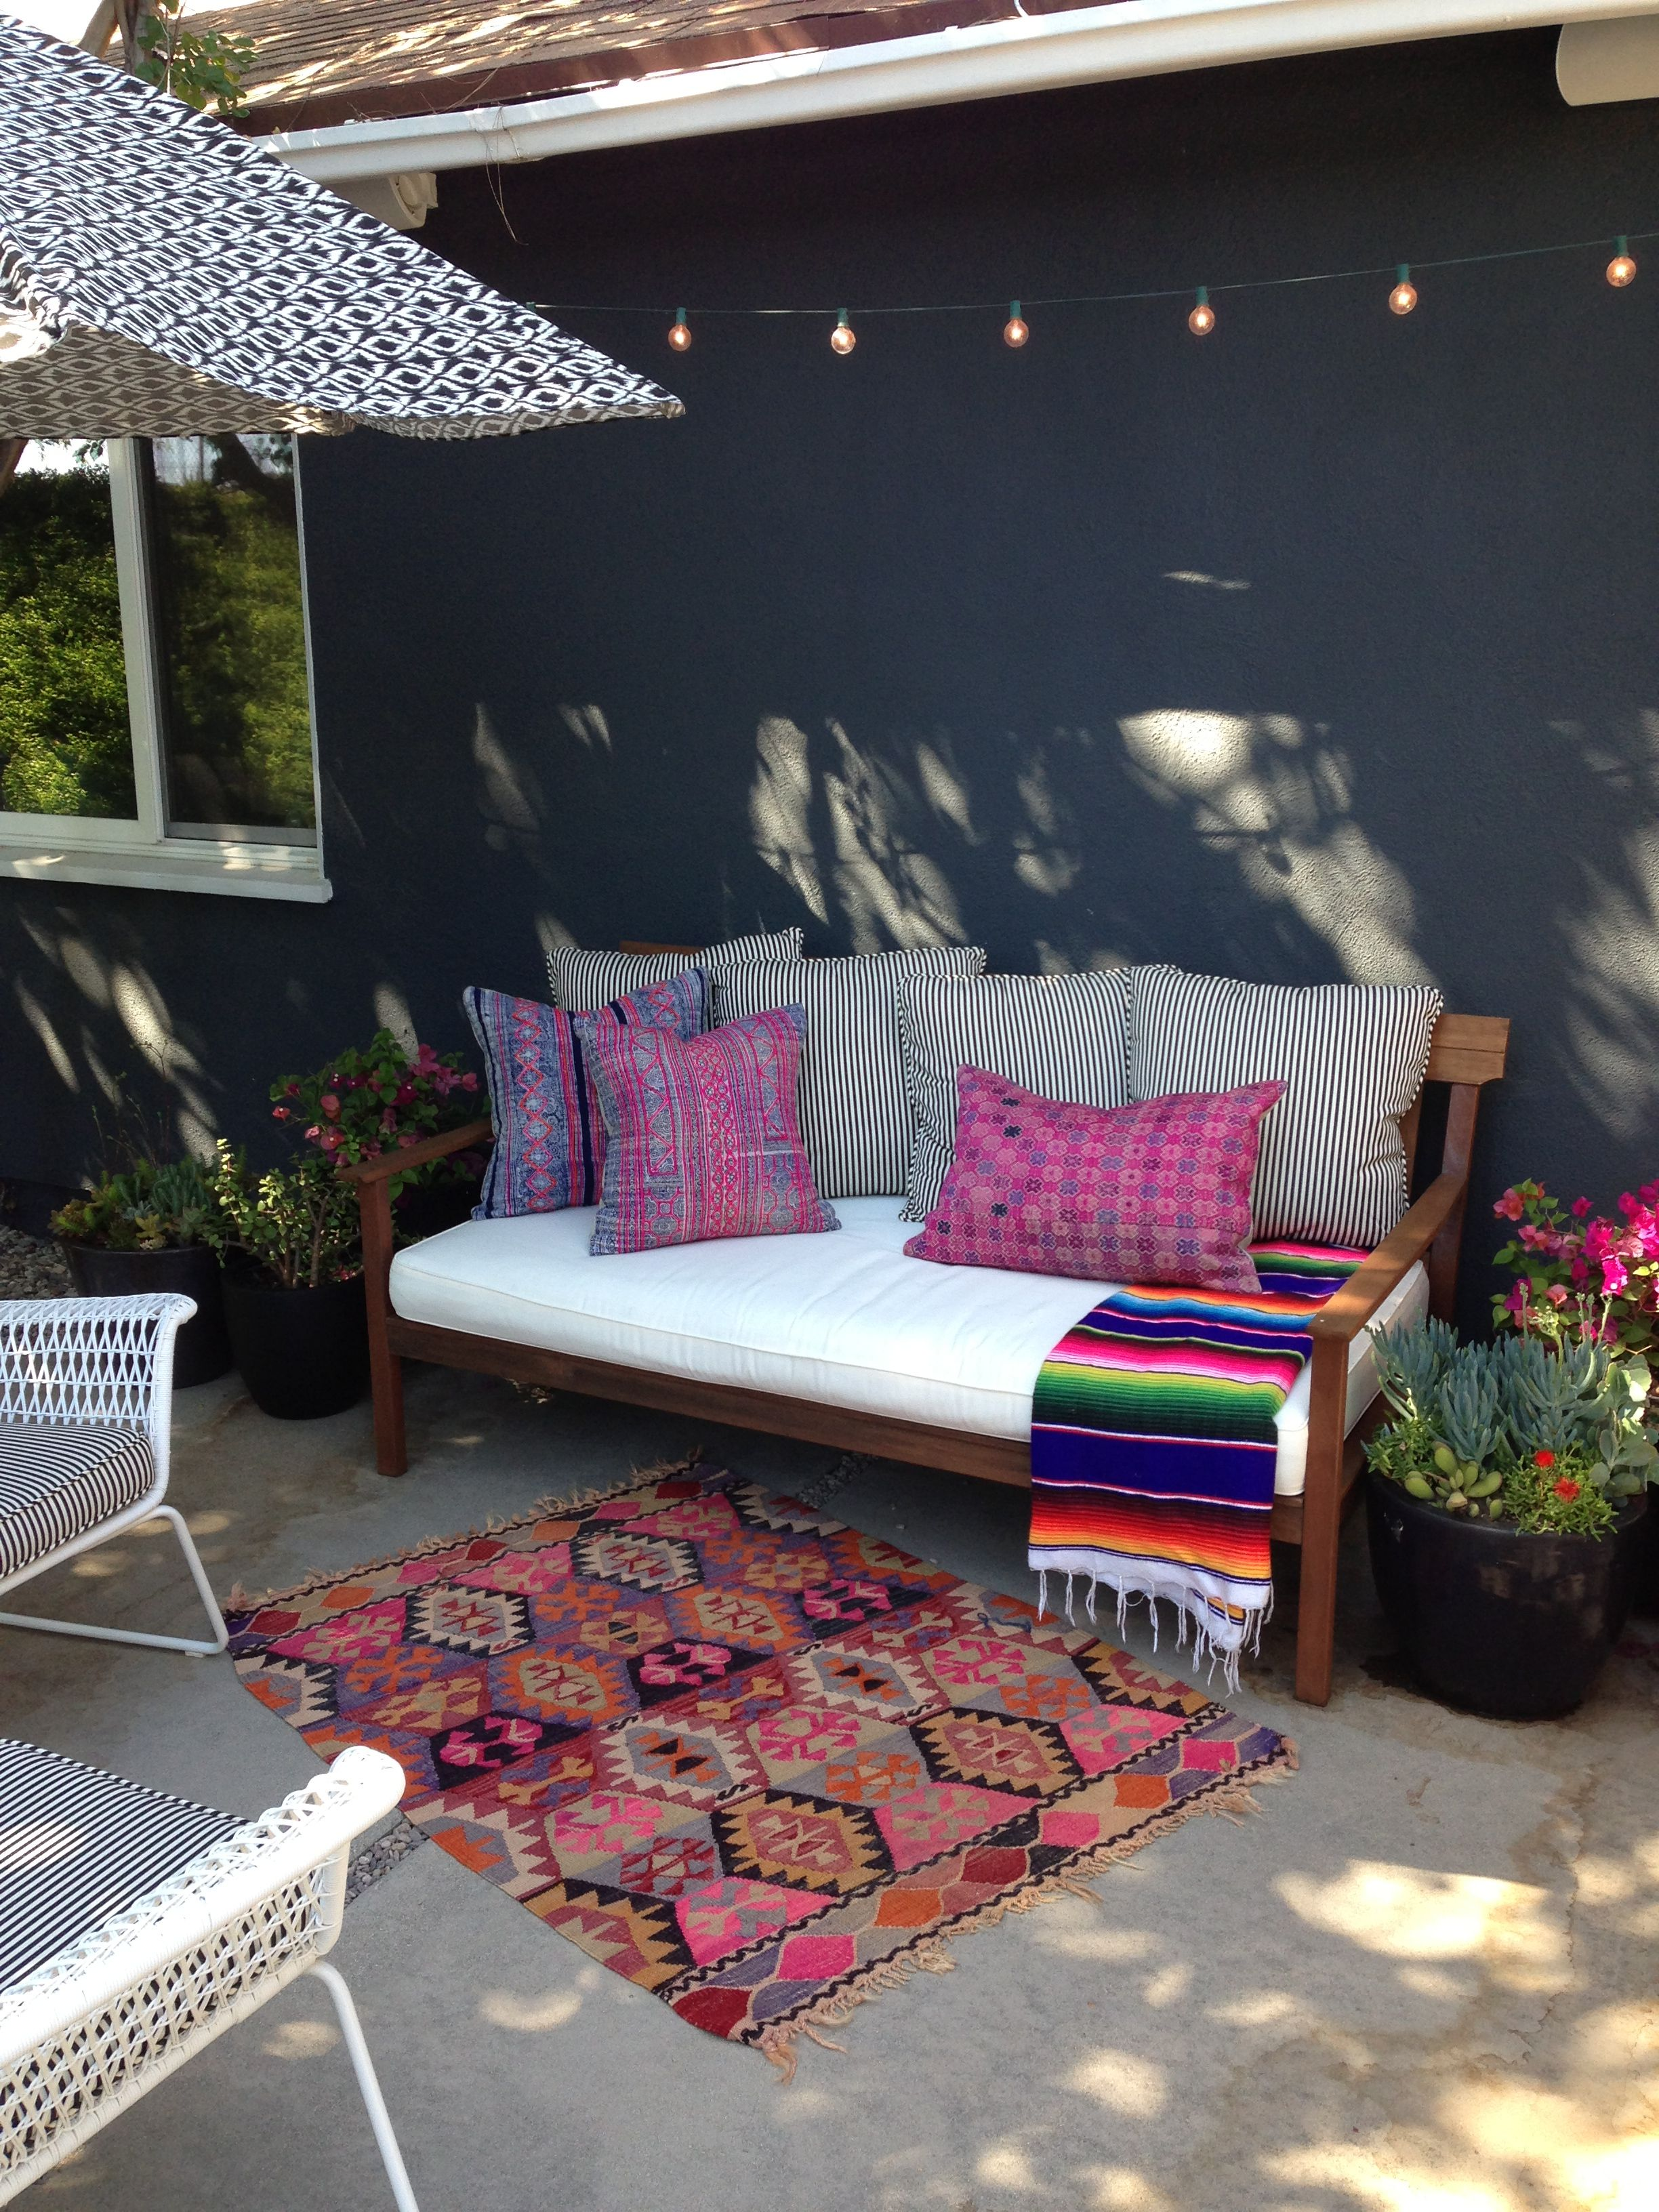 Outdoor room amber interiors | Outdoor rooms, Home ... on Amber Outdoor Living id=23931